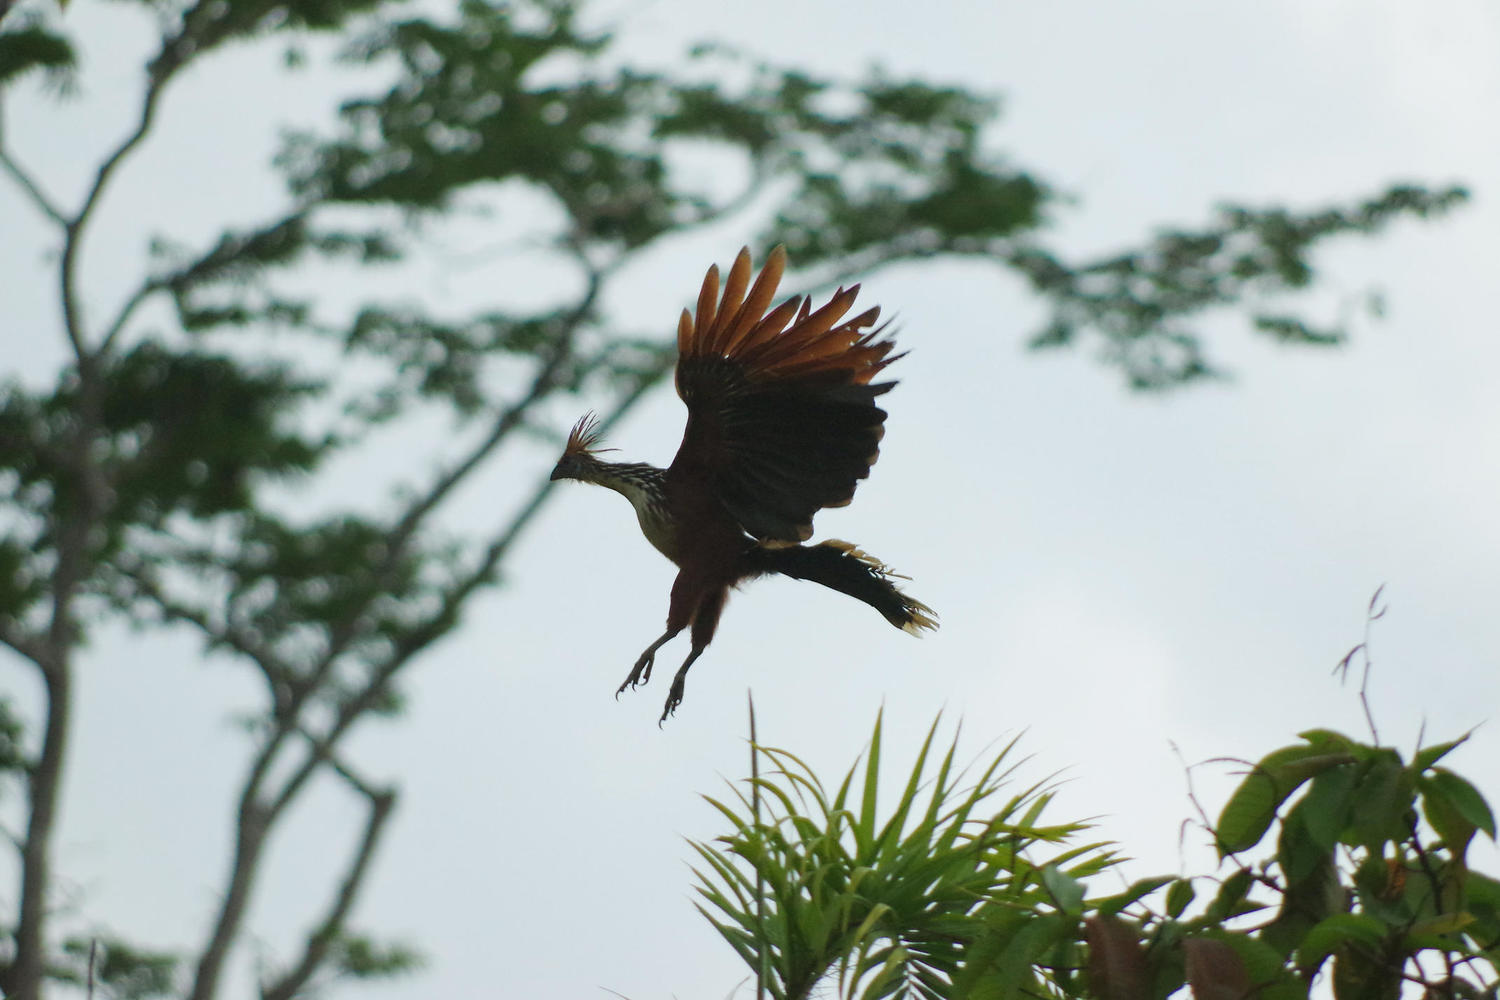 hoatzin coming in to land at Eden Lodge in Ecuadorian Amazon